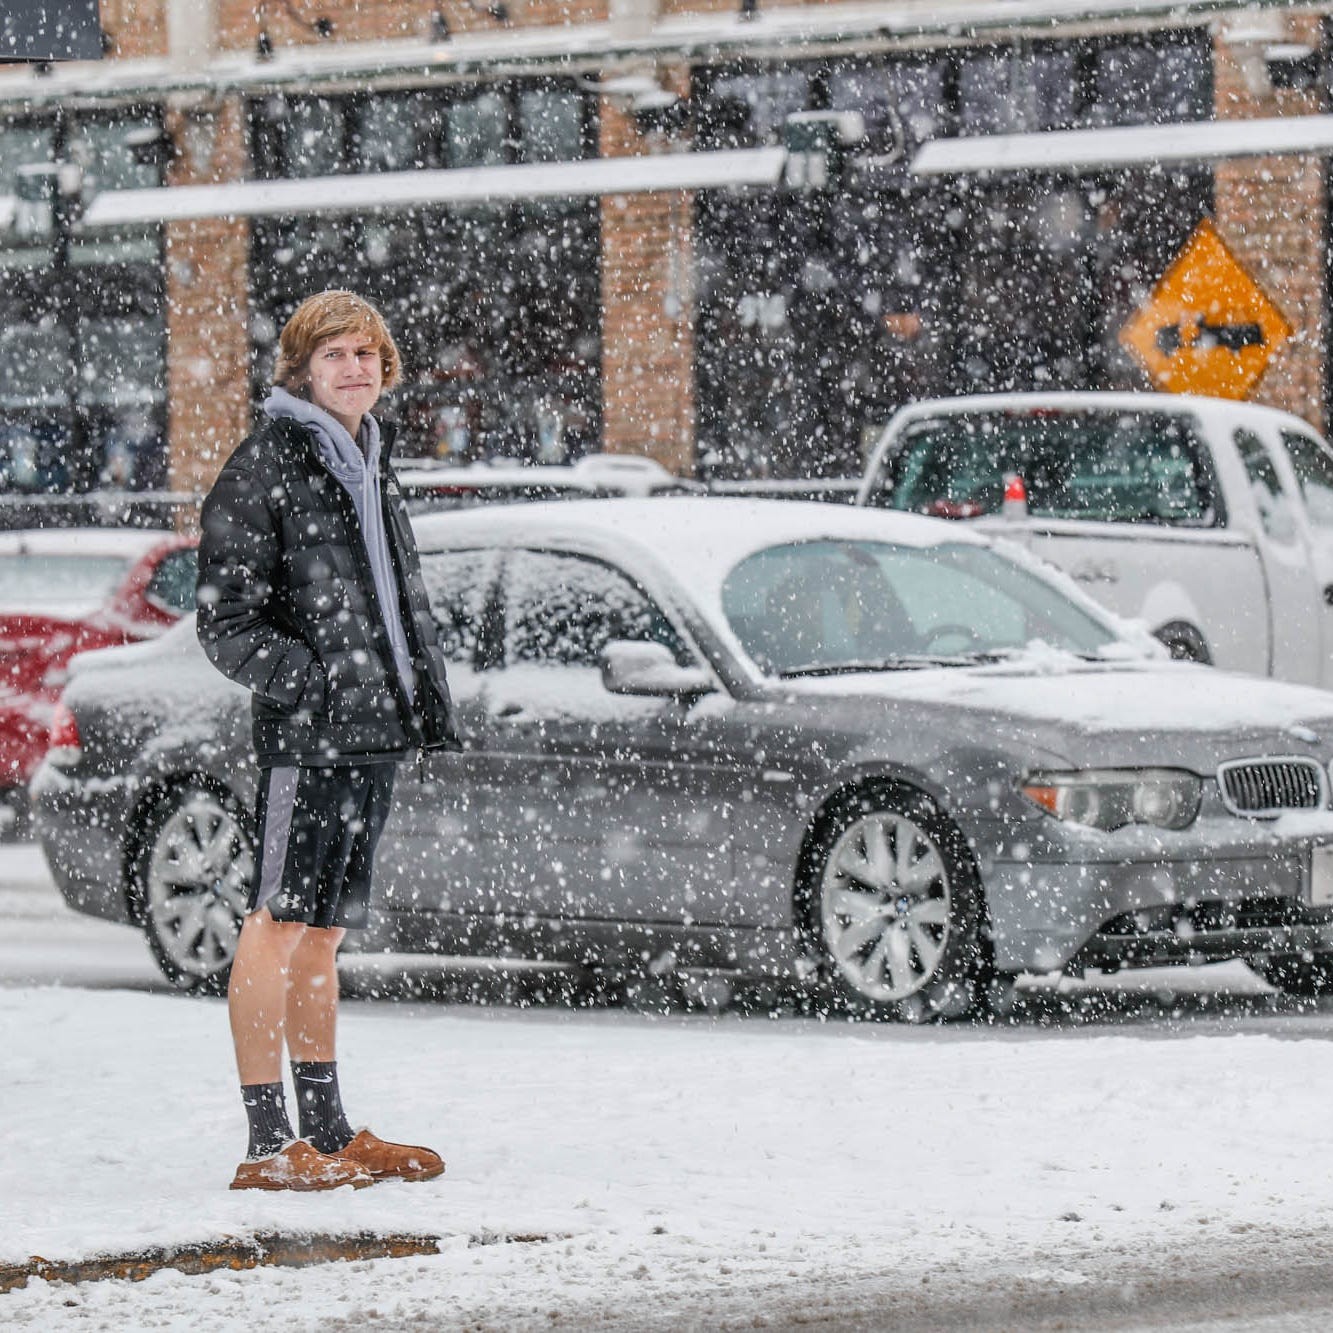 Indianapolis weather: Welcome to 'Smarch.' Snow and single-digit temperatures are coming.